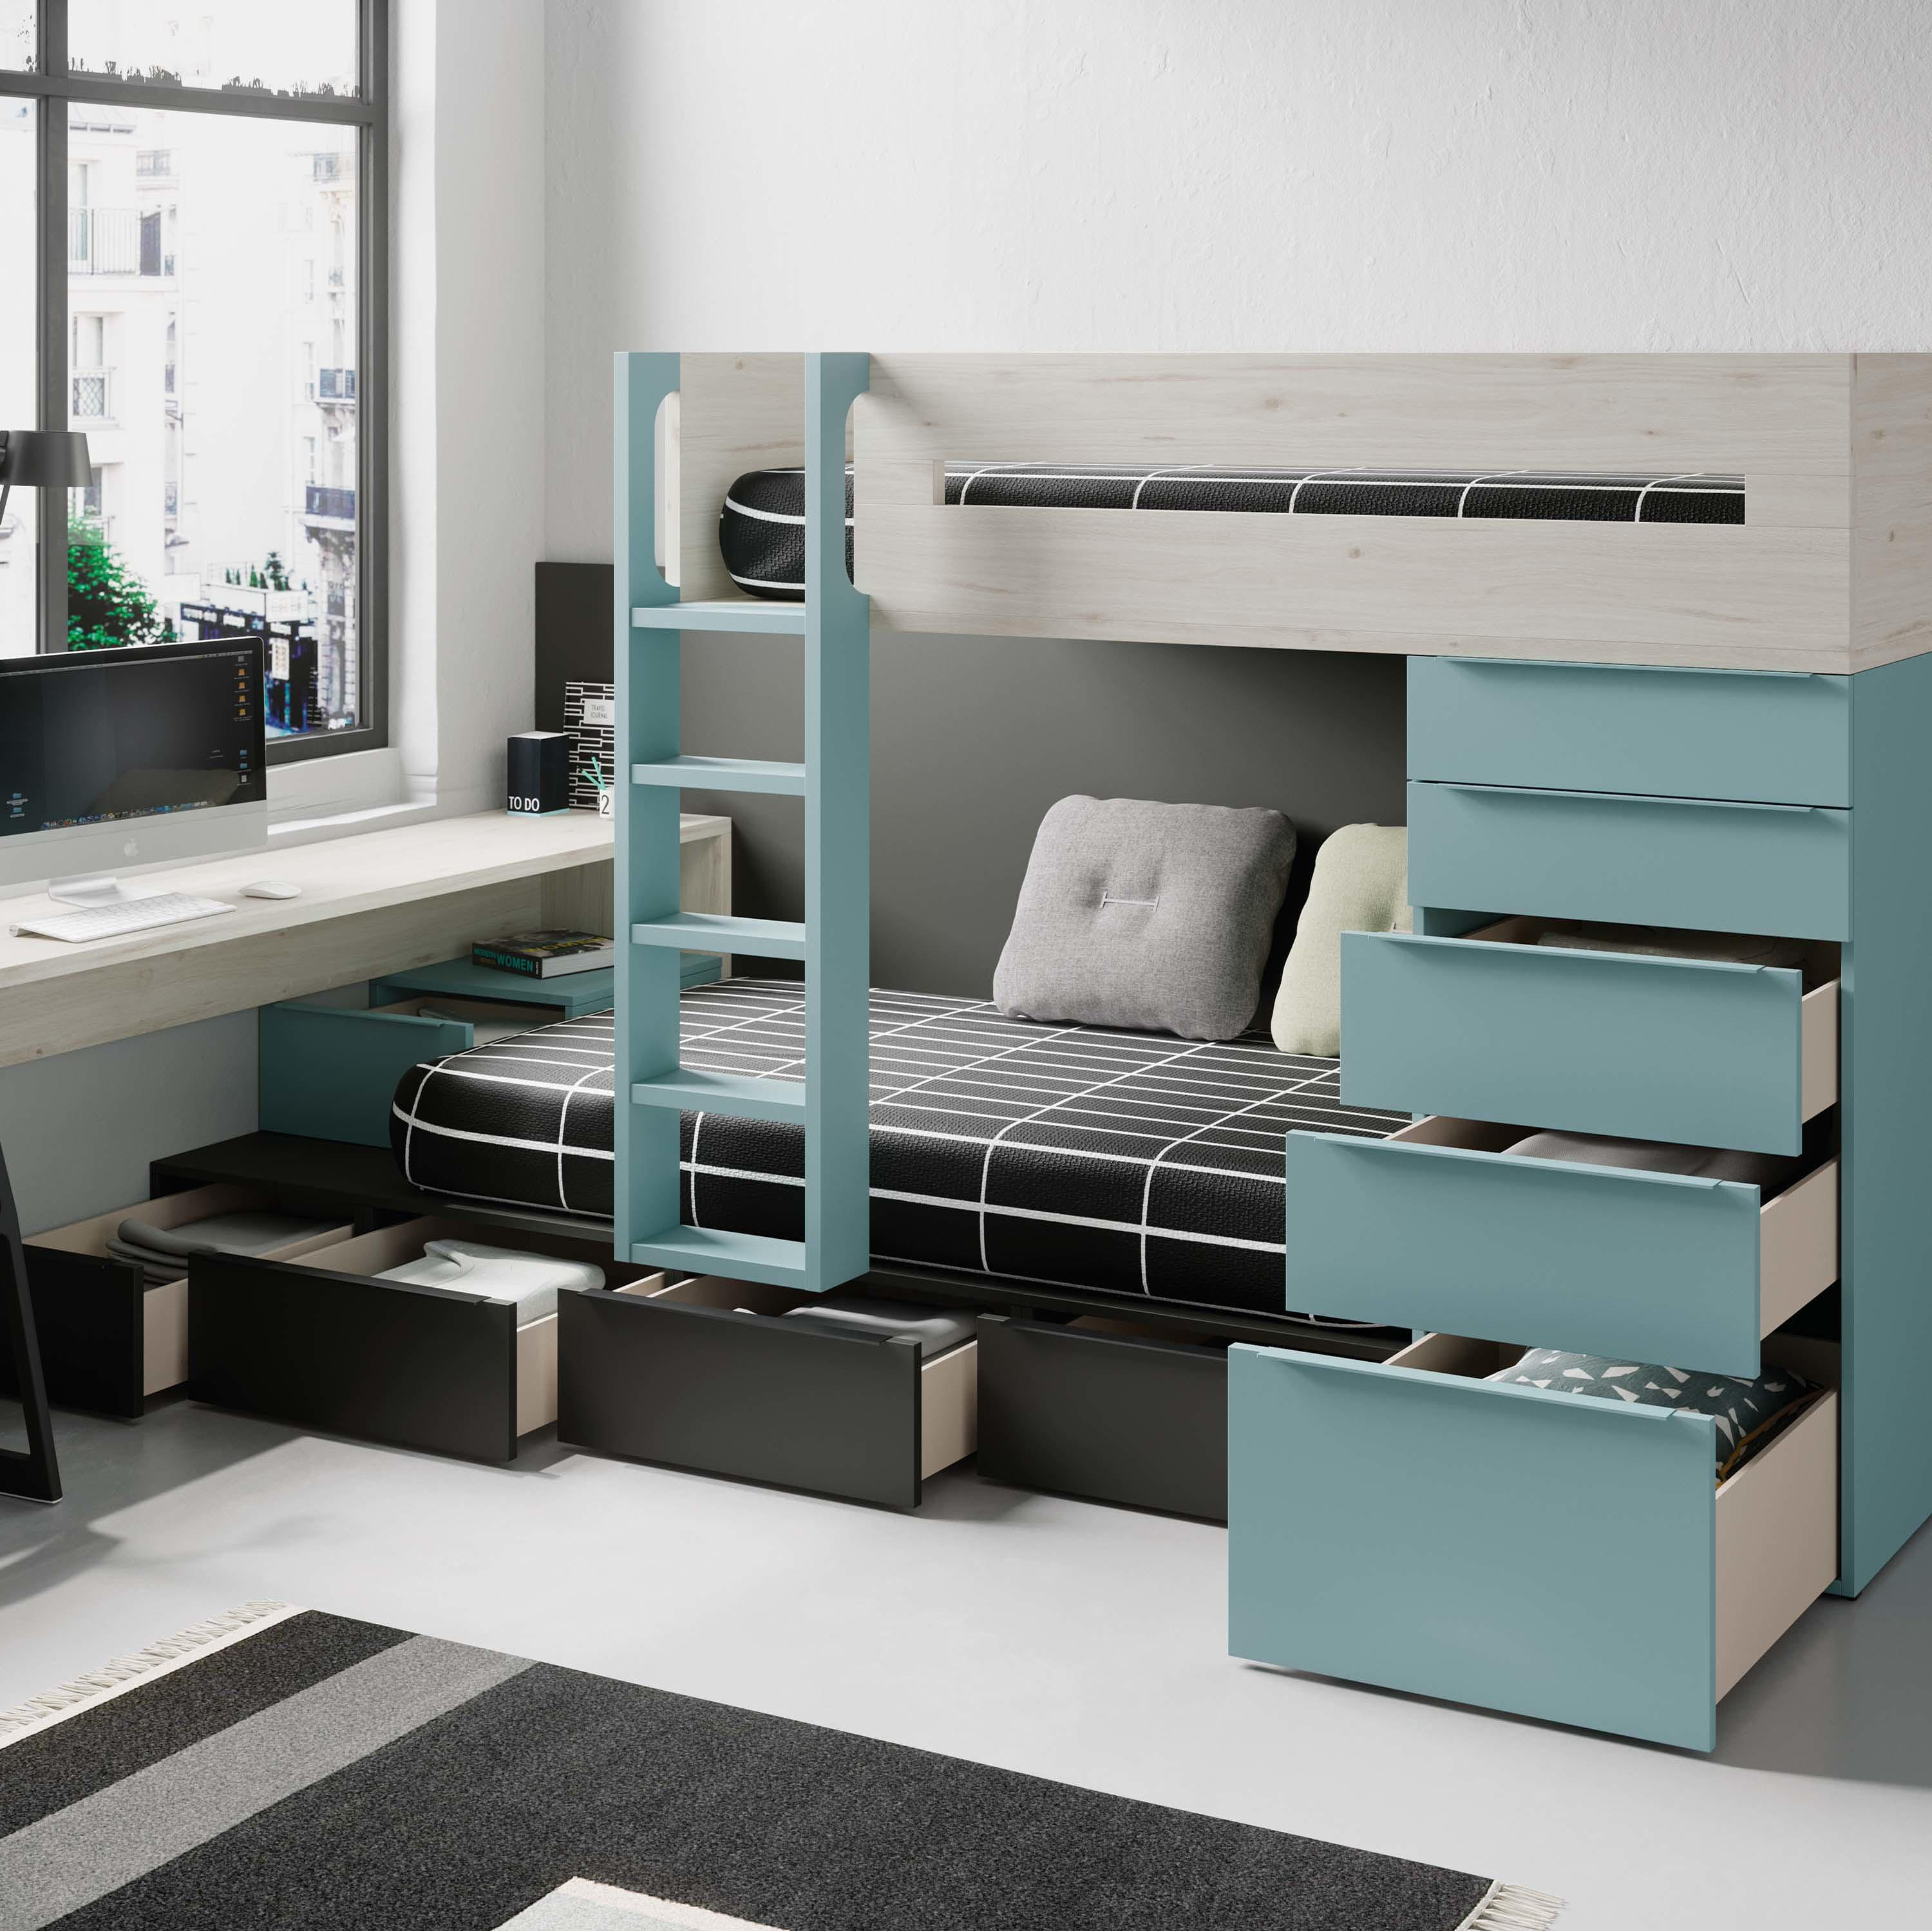 Train Bunk Bed 18 Kids Beds From Jjp Muebles Architonic